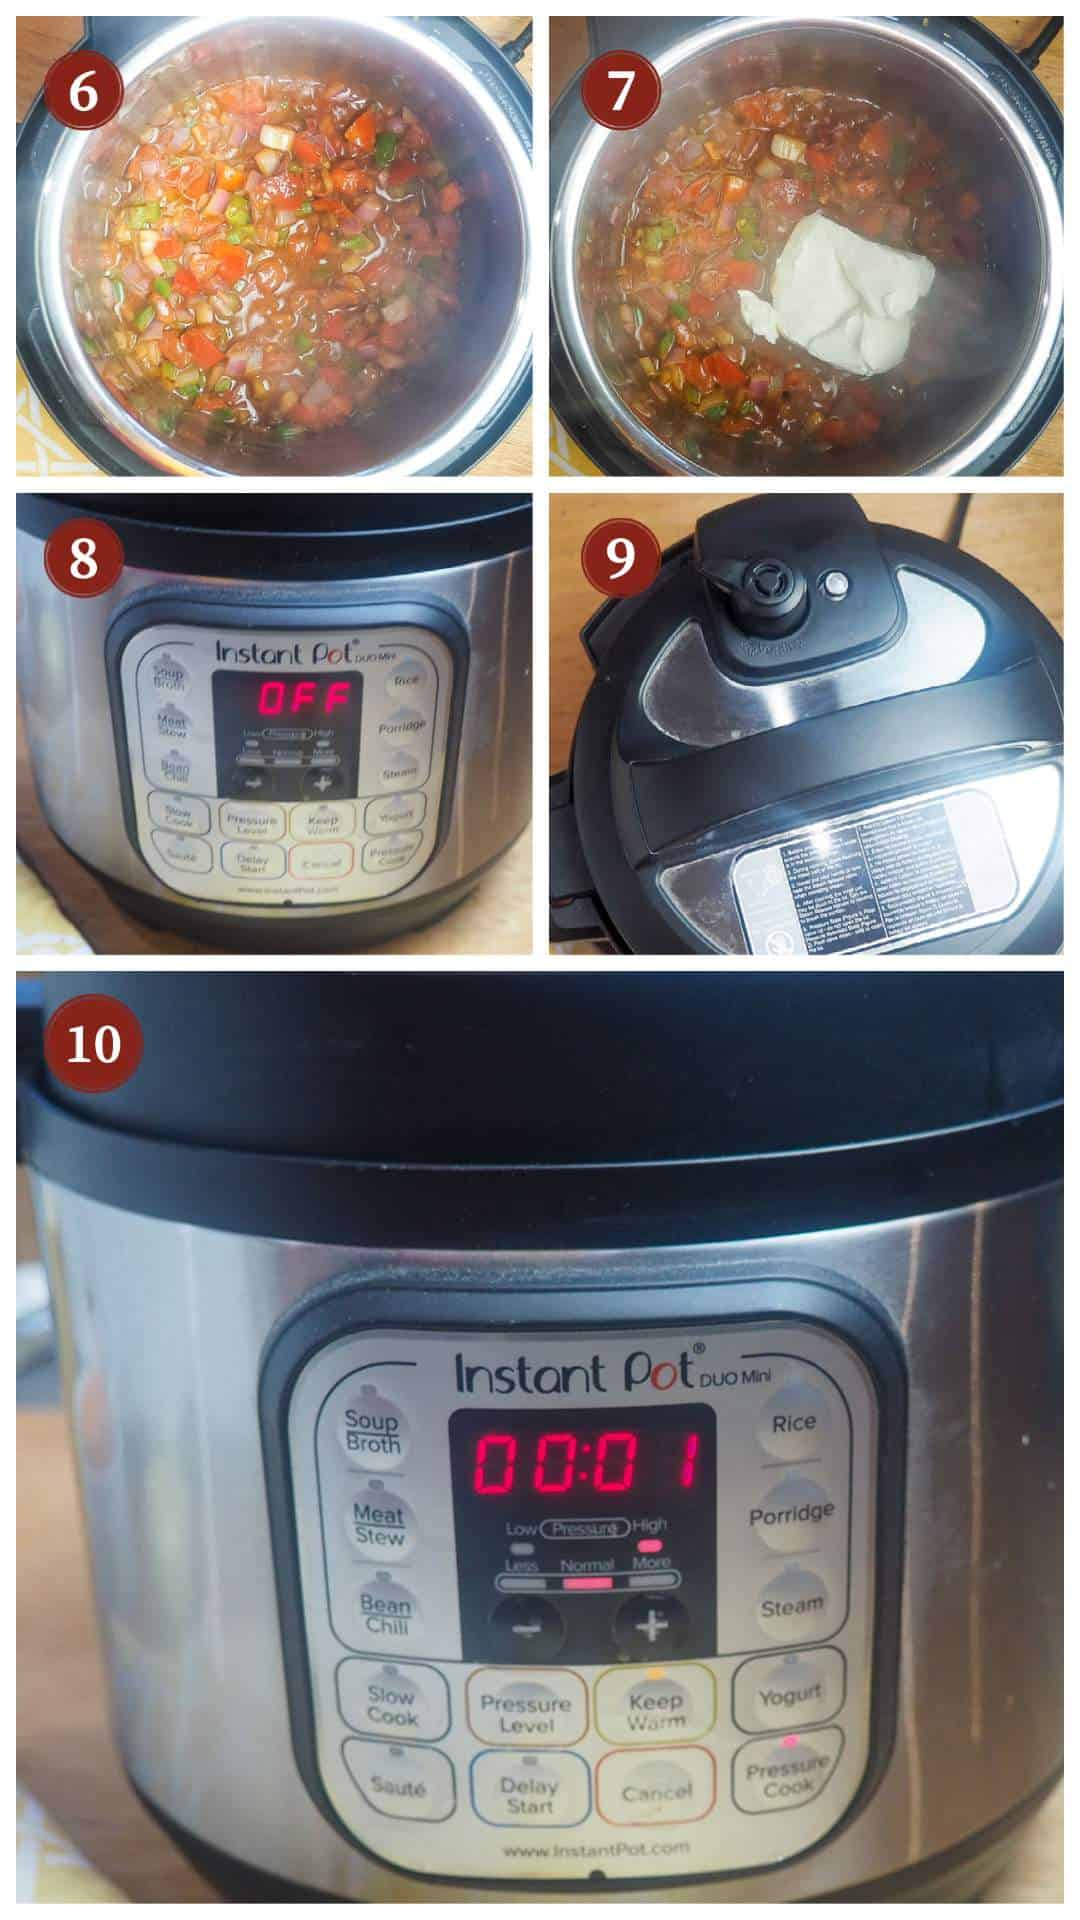 A collage of images showing the process of making queso in an Instant Pot, steps 6 - 10.